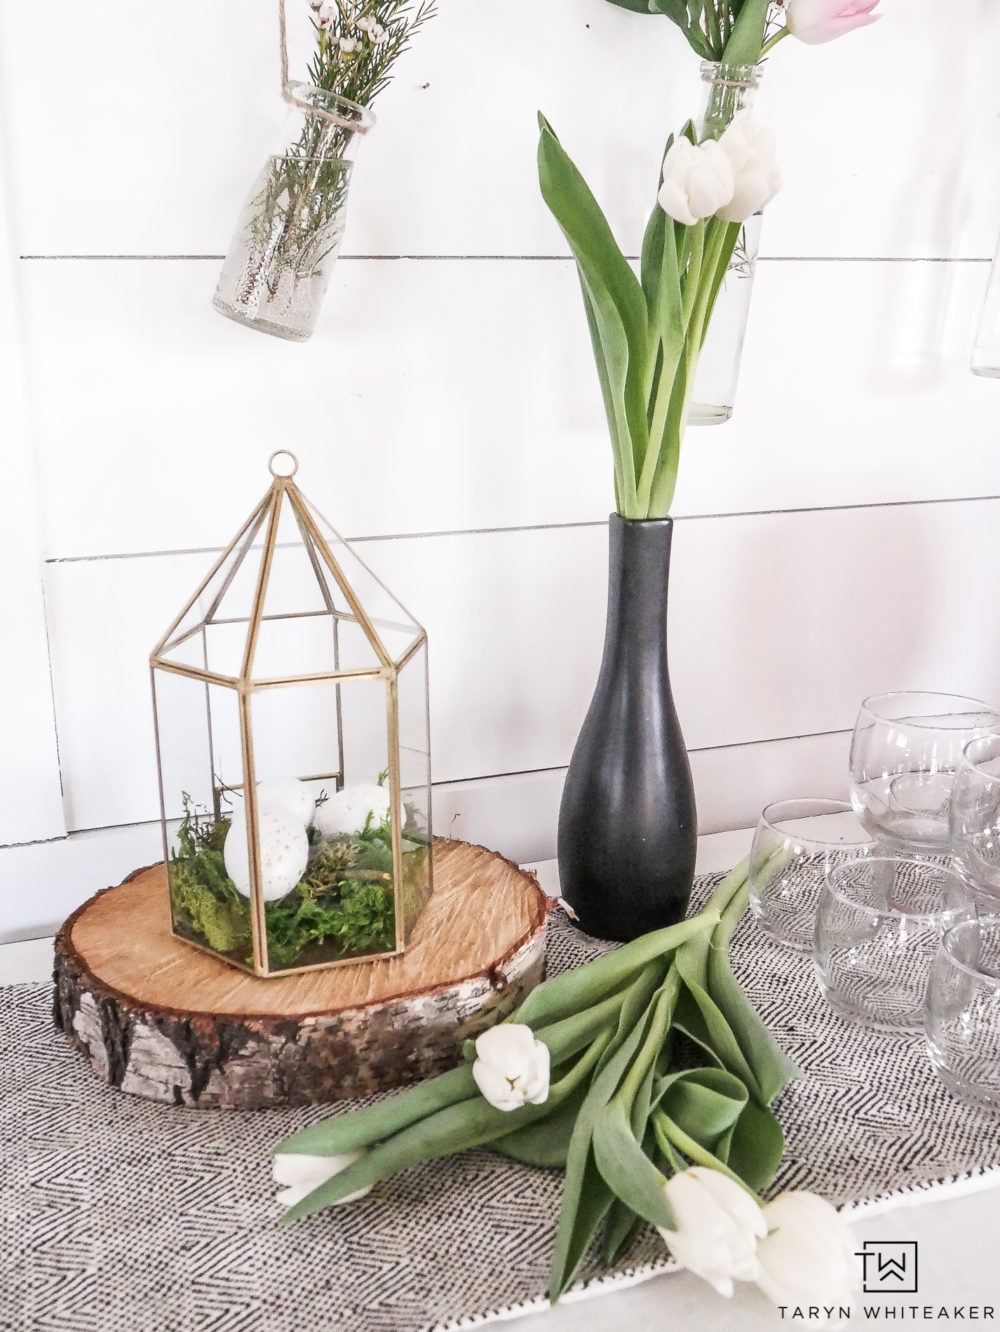 Add simple touches of Easter to your beverage station with this DIY Egg Terrarium and fresh tulips!